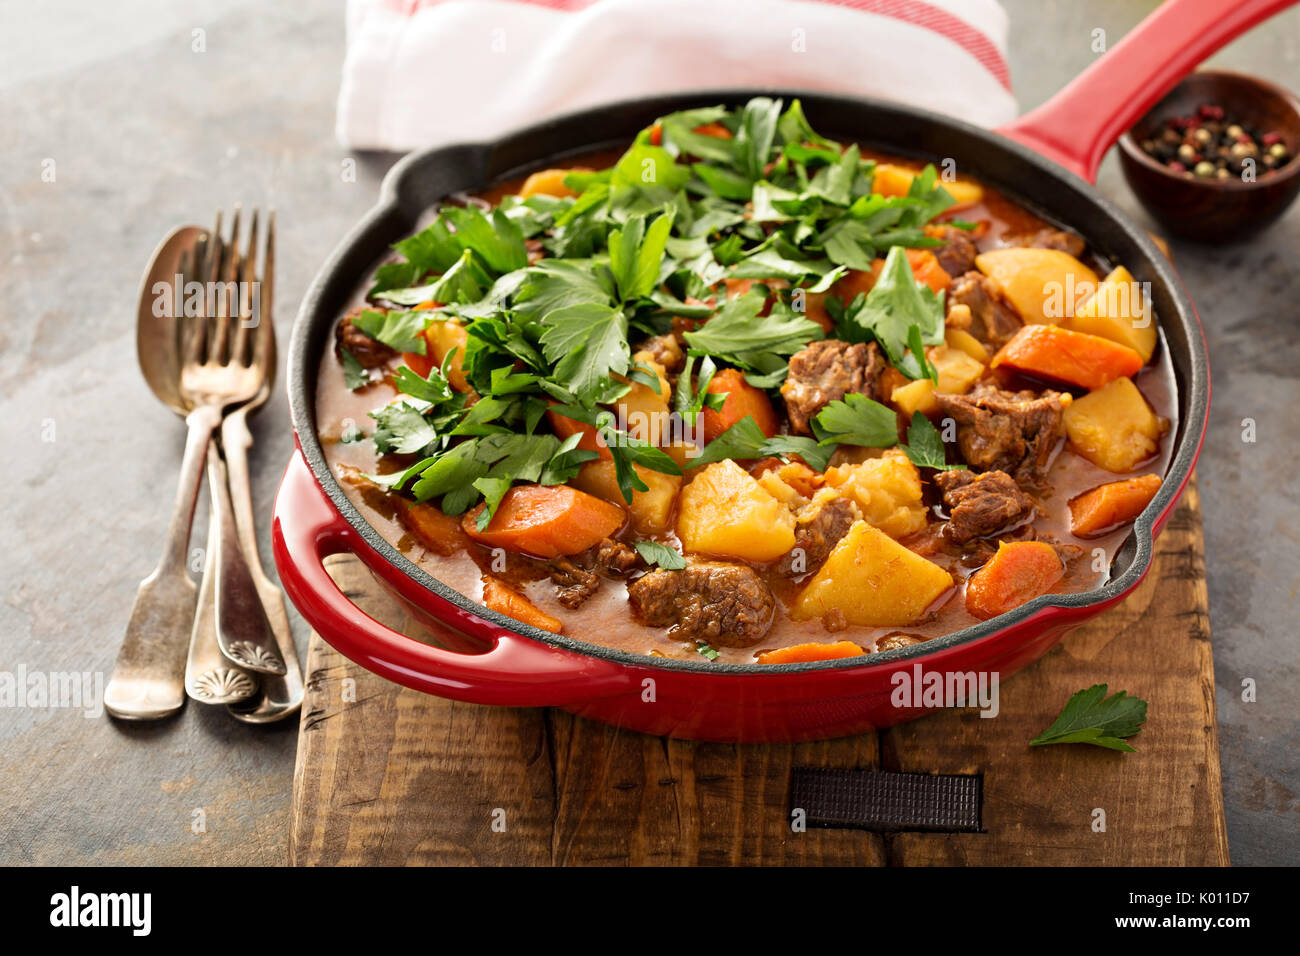 Stewed beef with potatoes, carrot and parsley - Stock Image